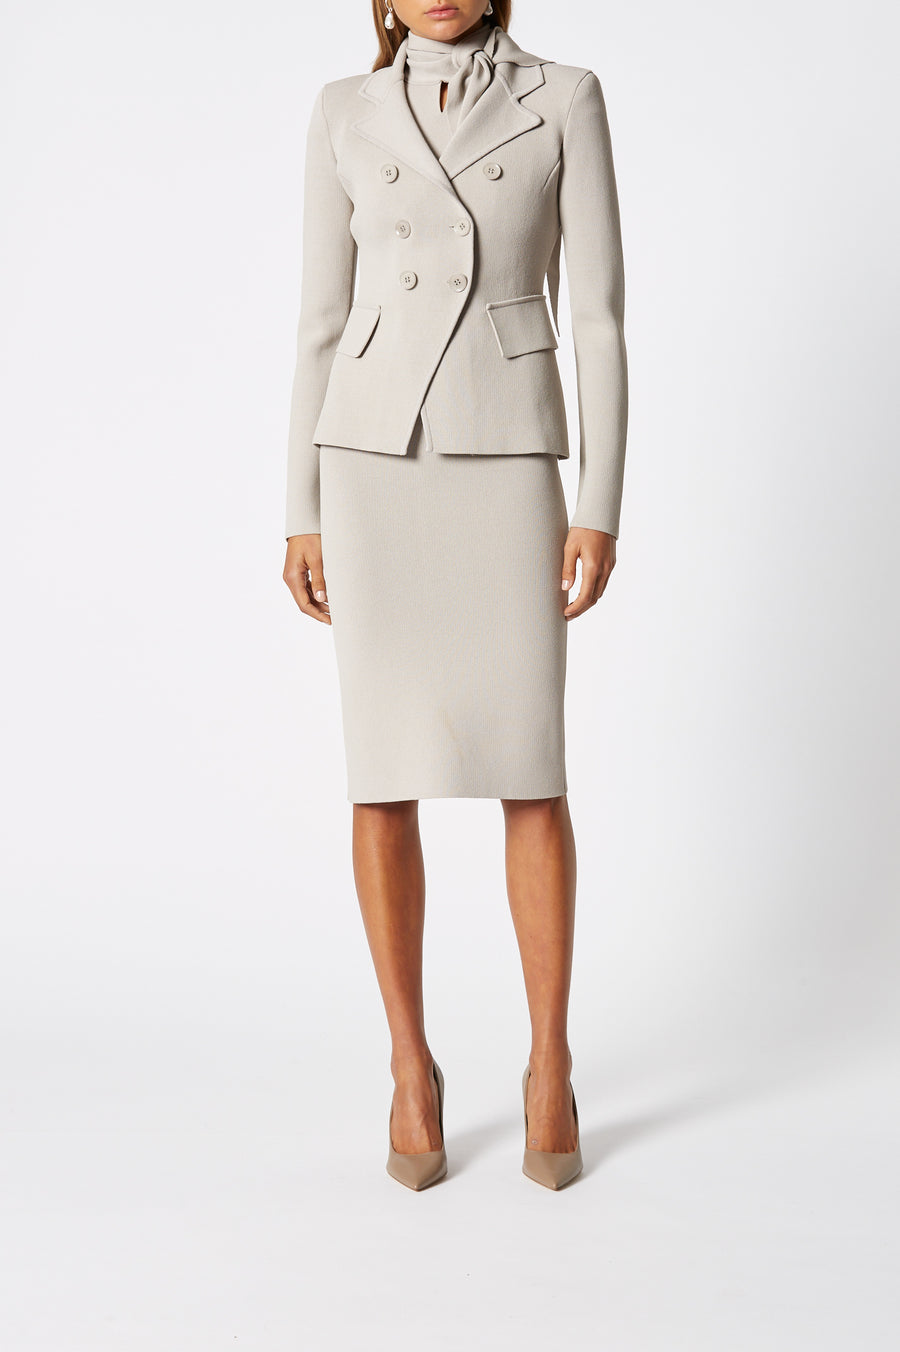 Crepe Knit Tailored Jacket, double breasted lapels, side pockets and a slightly nipped-in waist. Color Oyster